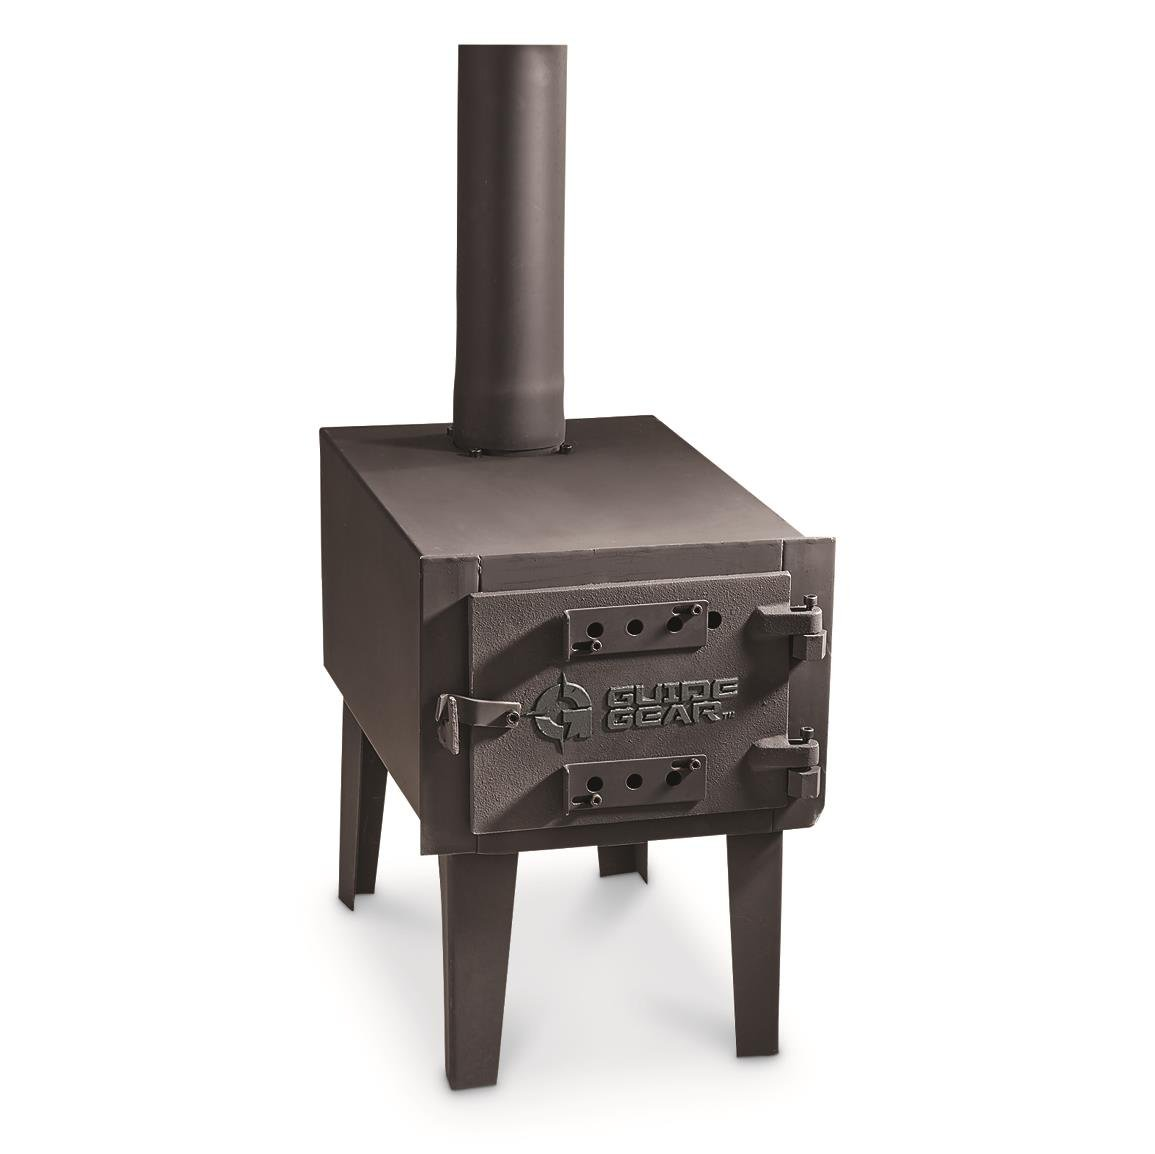 Amazon.com: Guide Gear Outdoor Wood Stove: Sports & Outdoors